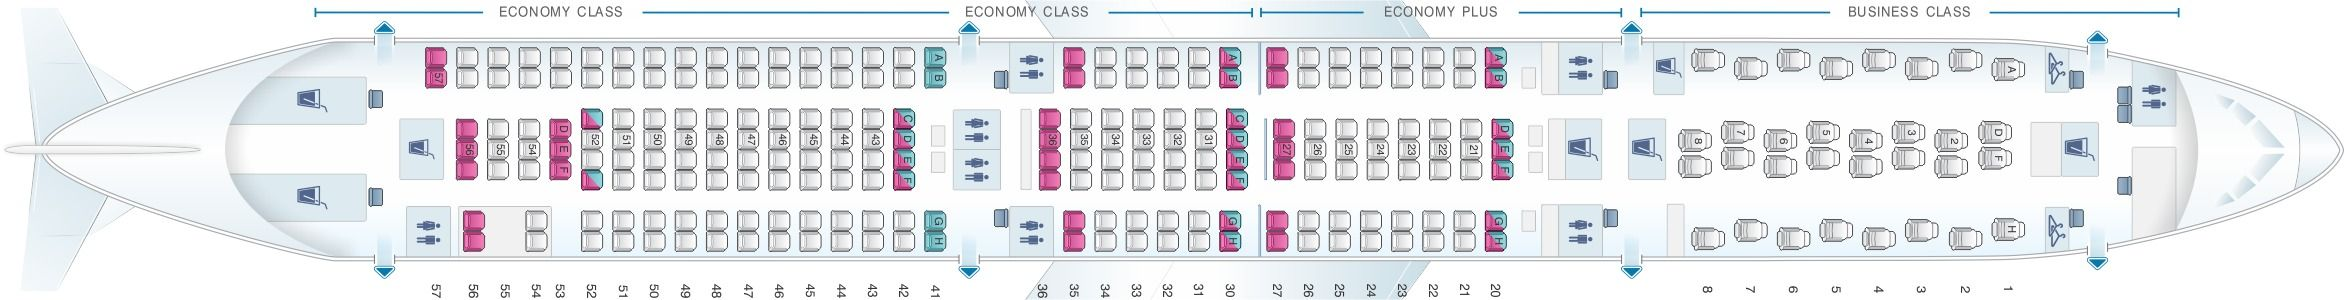 Seat Map And Seating Chart Airbus A330 300 Scandinavian Airlines Sas Asiana Airlines Malaysia Airlines Airlines